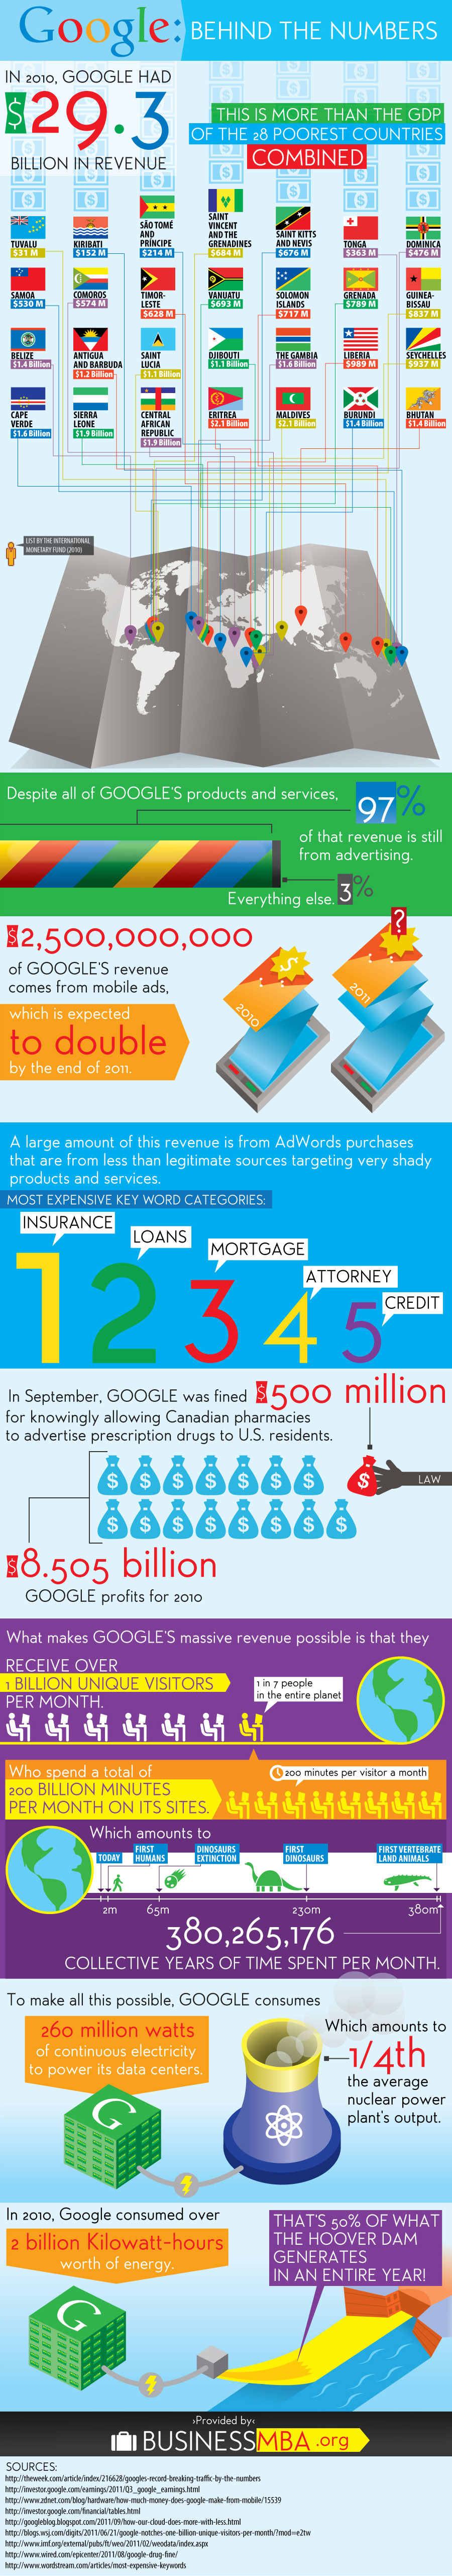 Google-Behind-The-Numbers-infographic